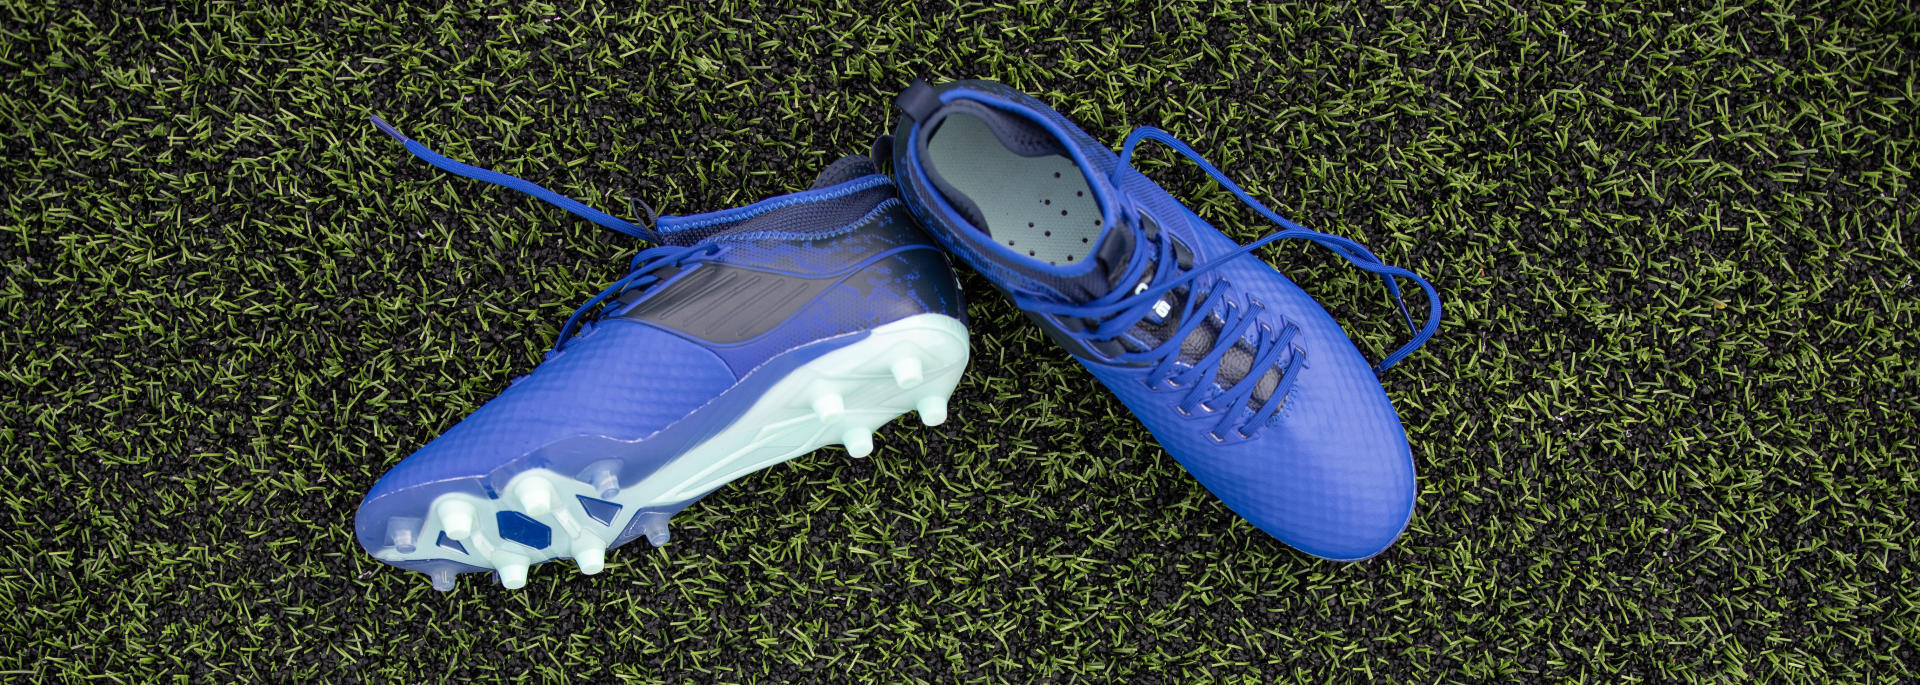 Conception-chaussures-foot